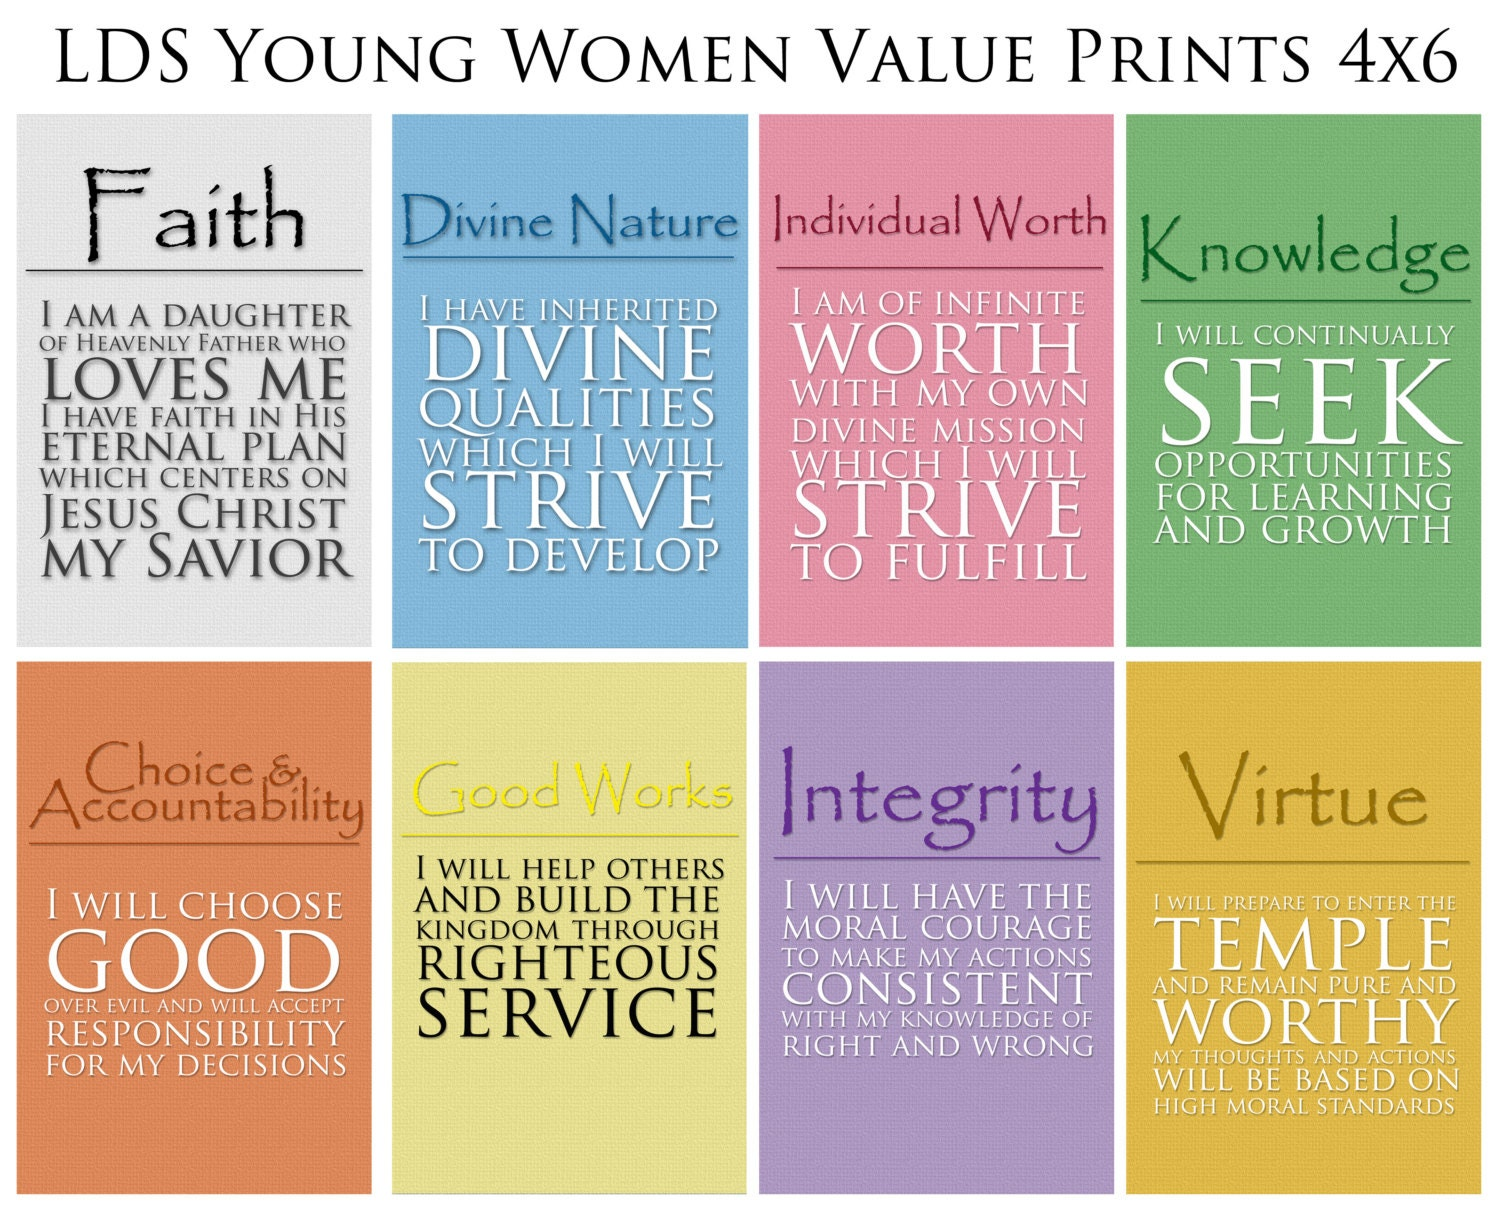 4x6 LDS Young Women Values - 8 print value pack - Digital Prints: www.etsy.com/listing/130967046/4x6-lds-young-women-values-8-print...